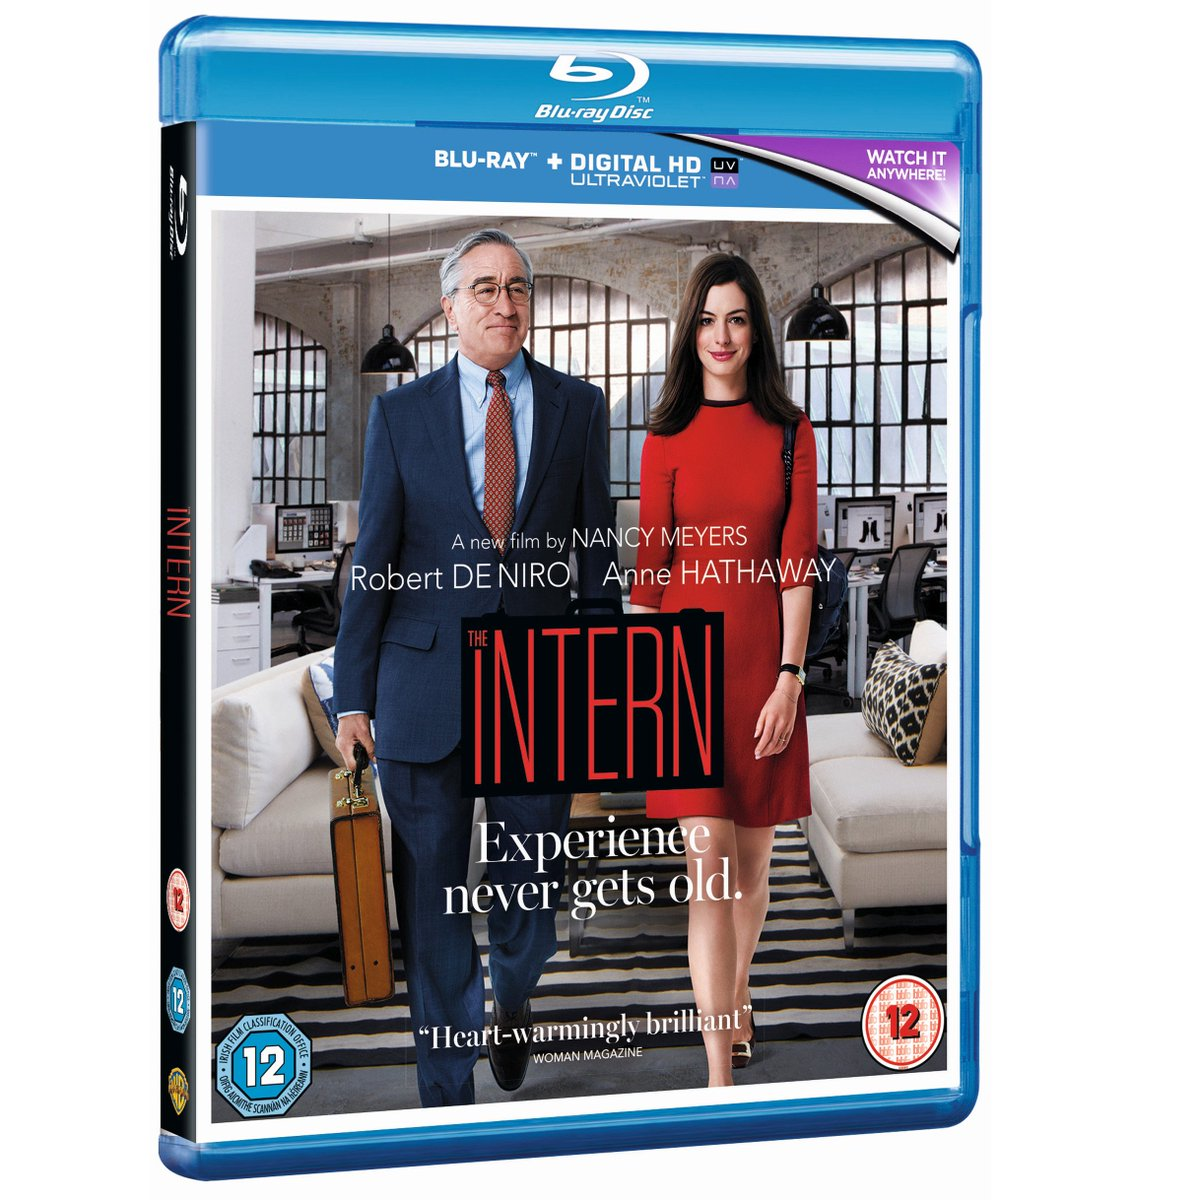 Win! Follow @CultBoxTV and RT for a chance to win one of 4 copies of 'The Intern' - https://t.co/gIIFJ5J0tb https://t.co/c8FHzvnVYd